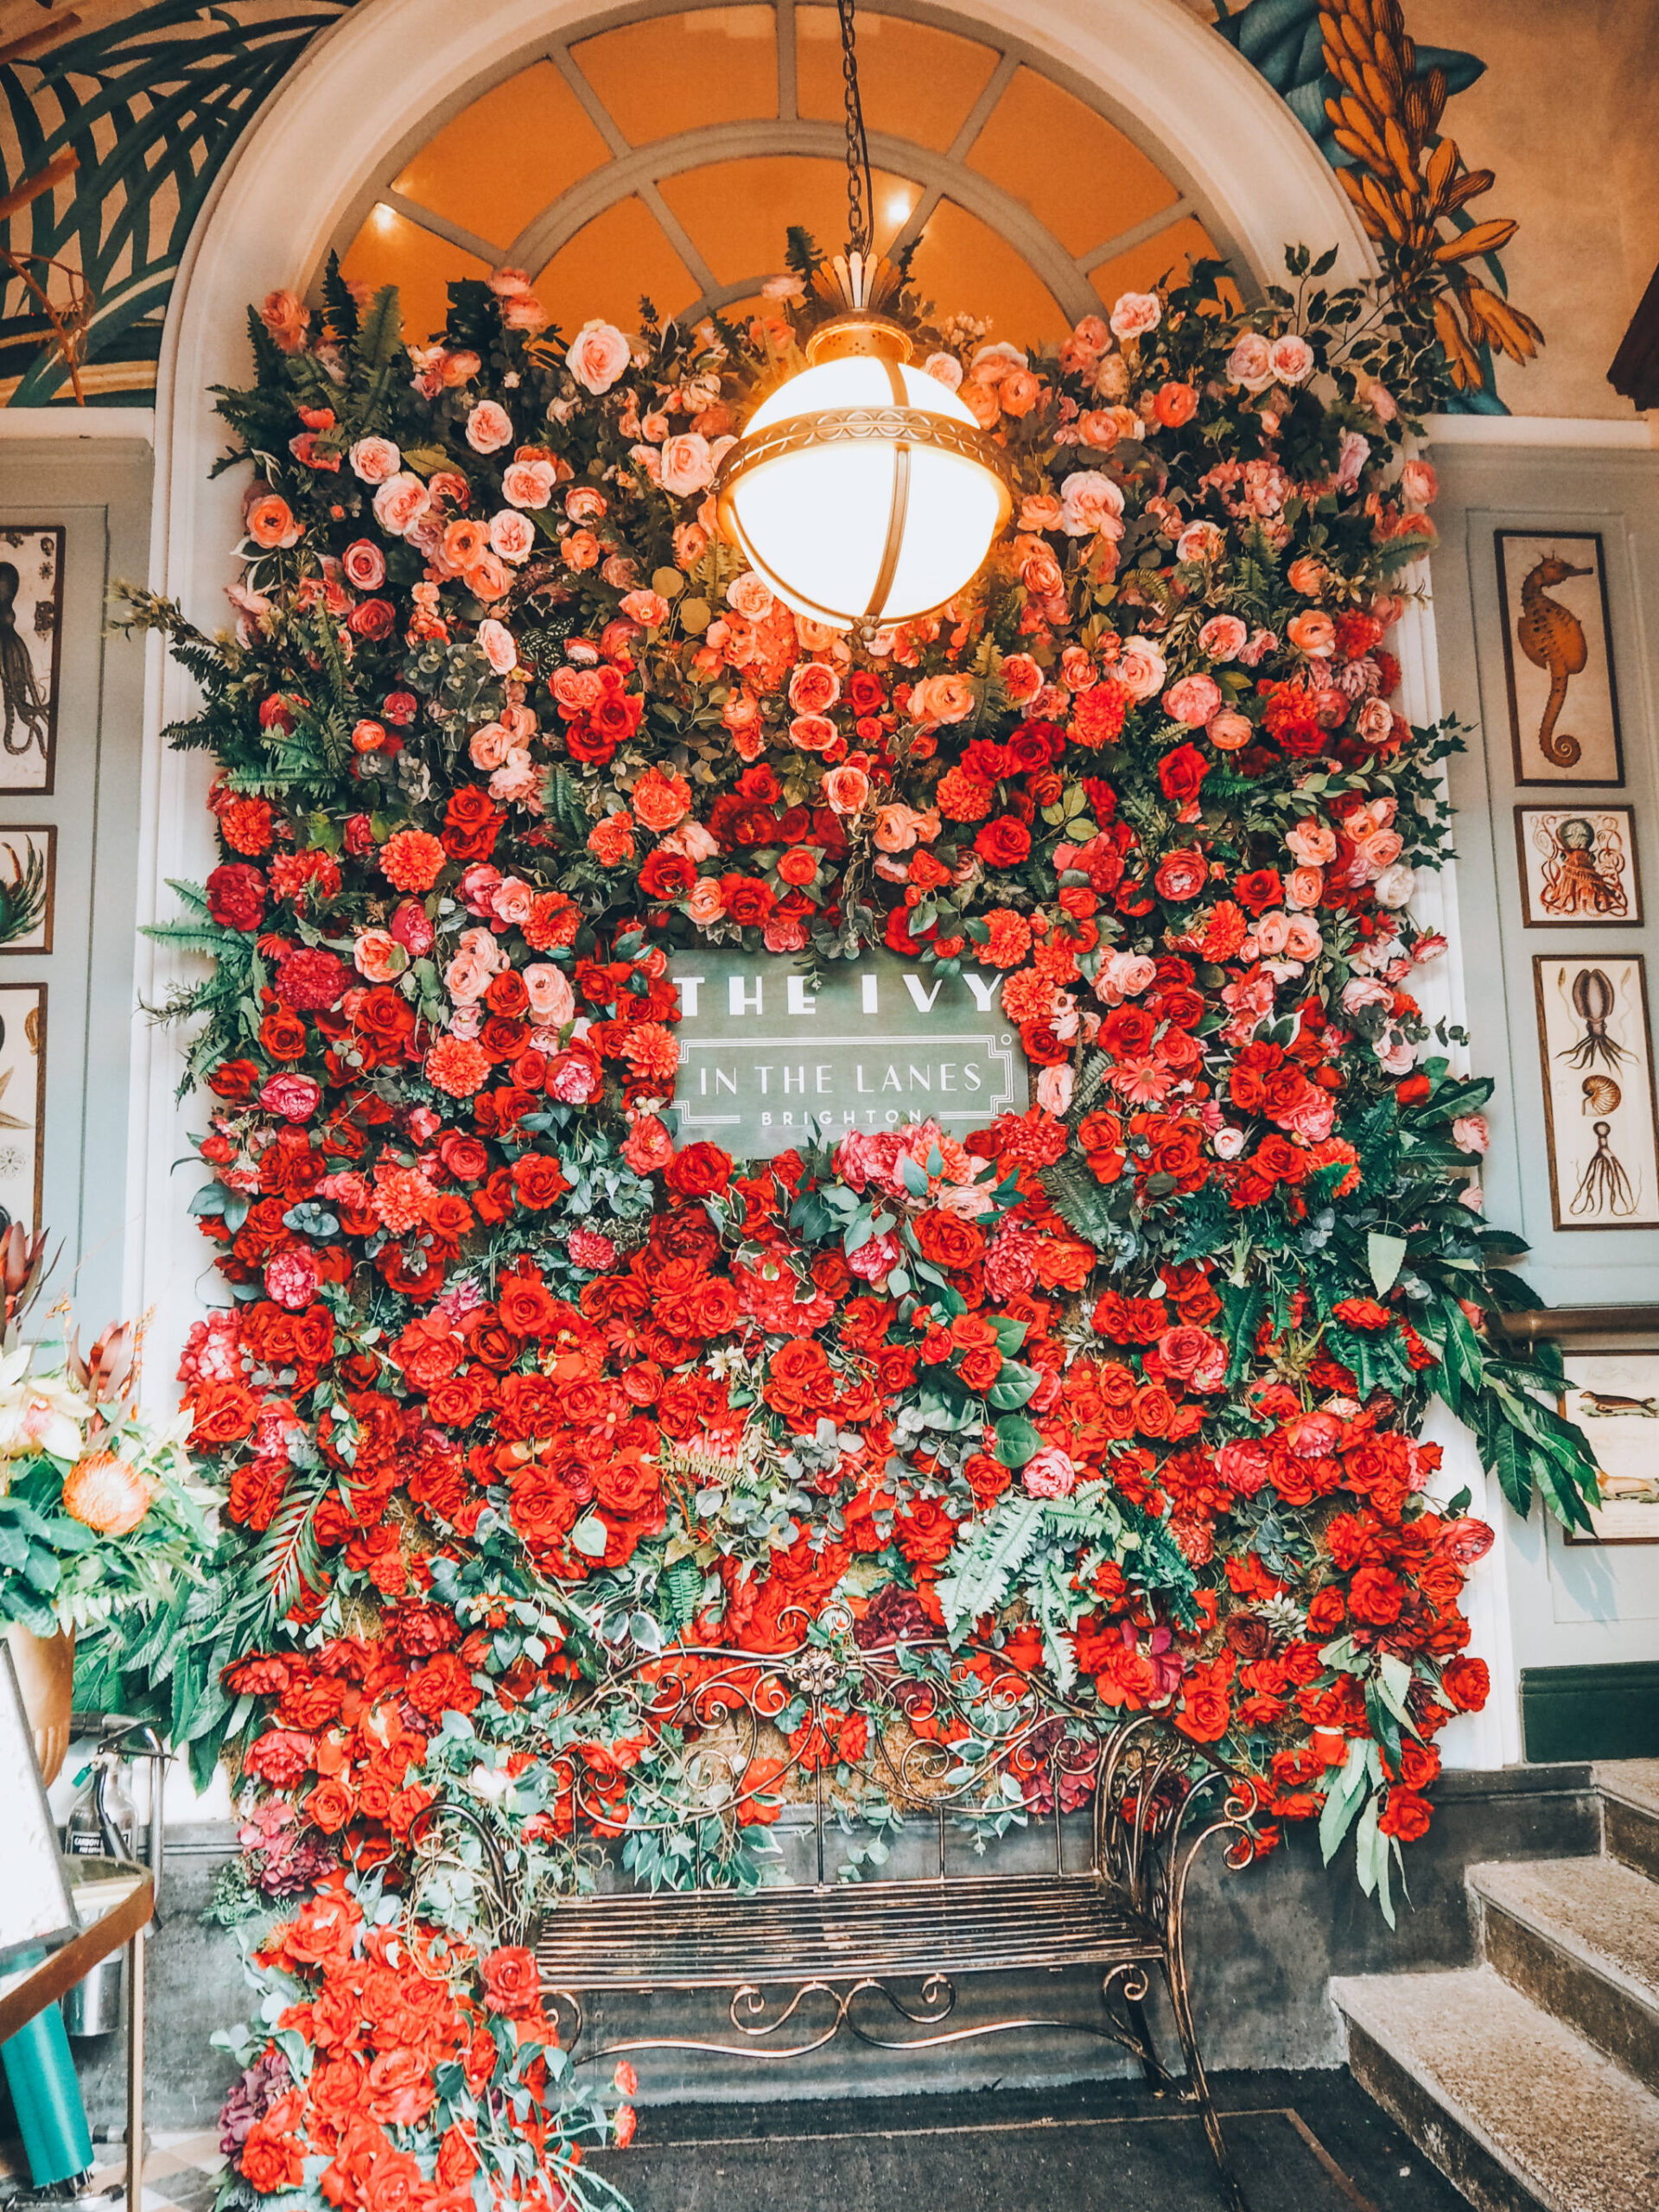 The entrance of Ivy in the Lanes Brighton, with a floral wall and copper bench